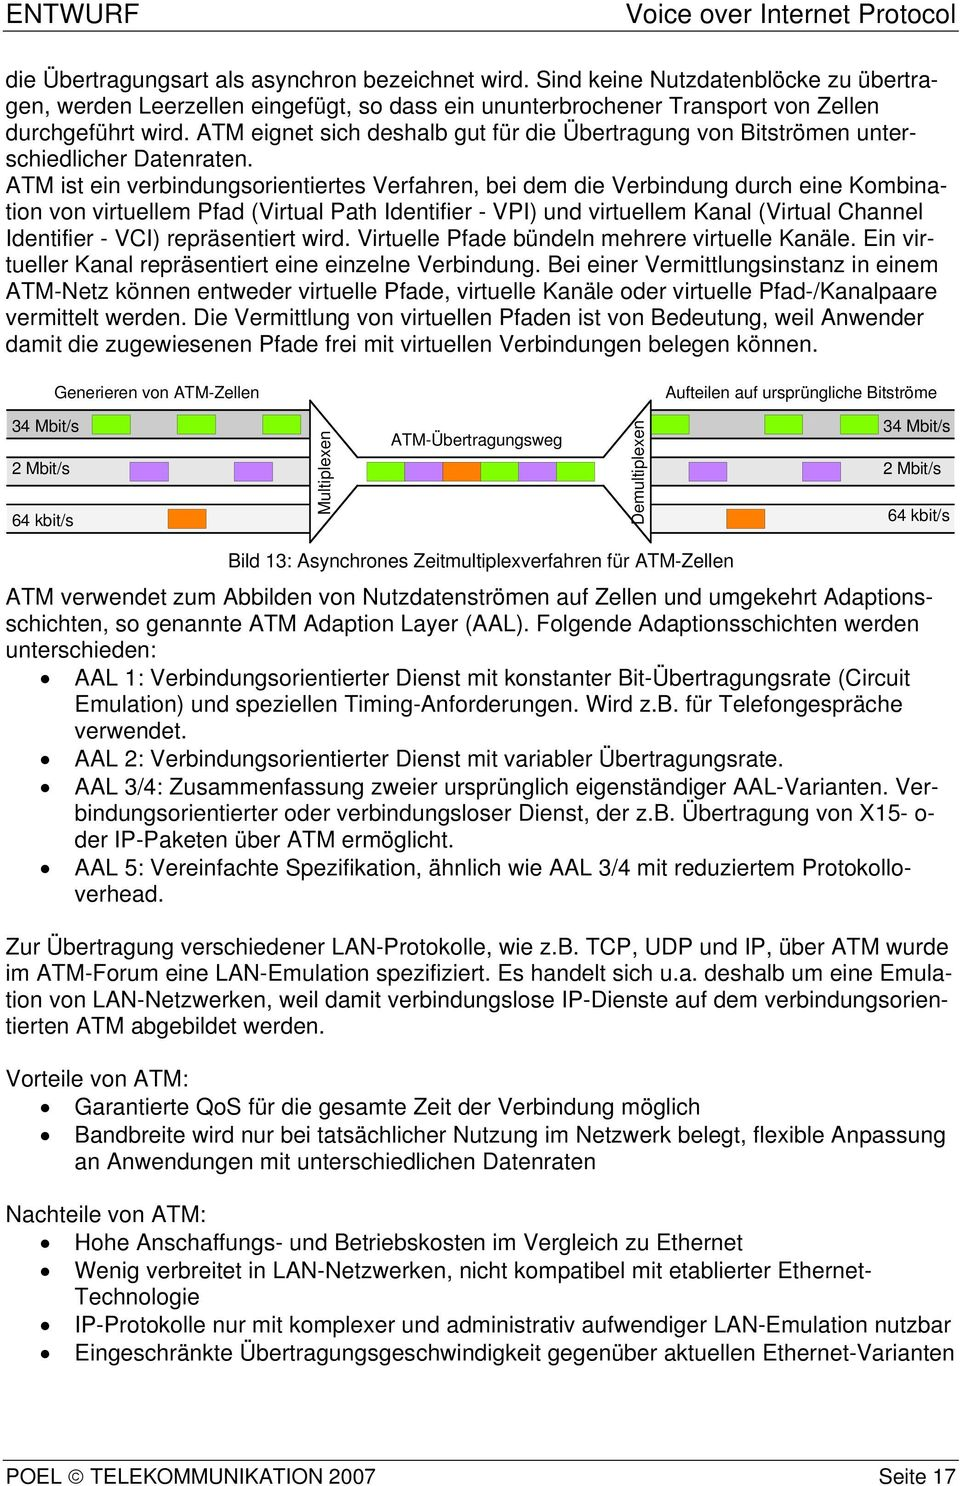 ATM ist ein verbindungsorientiertes Verfahren, bei dem die Verbindung durch eine Kombination von virtuellem Pfad (Virtual Path Identifier - VPI) und virtuellem Kanal (Virtual Channel Identifier -